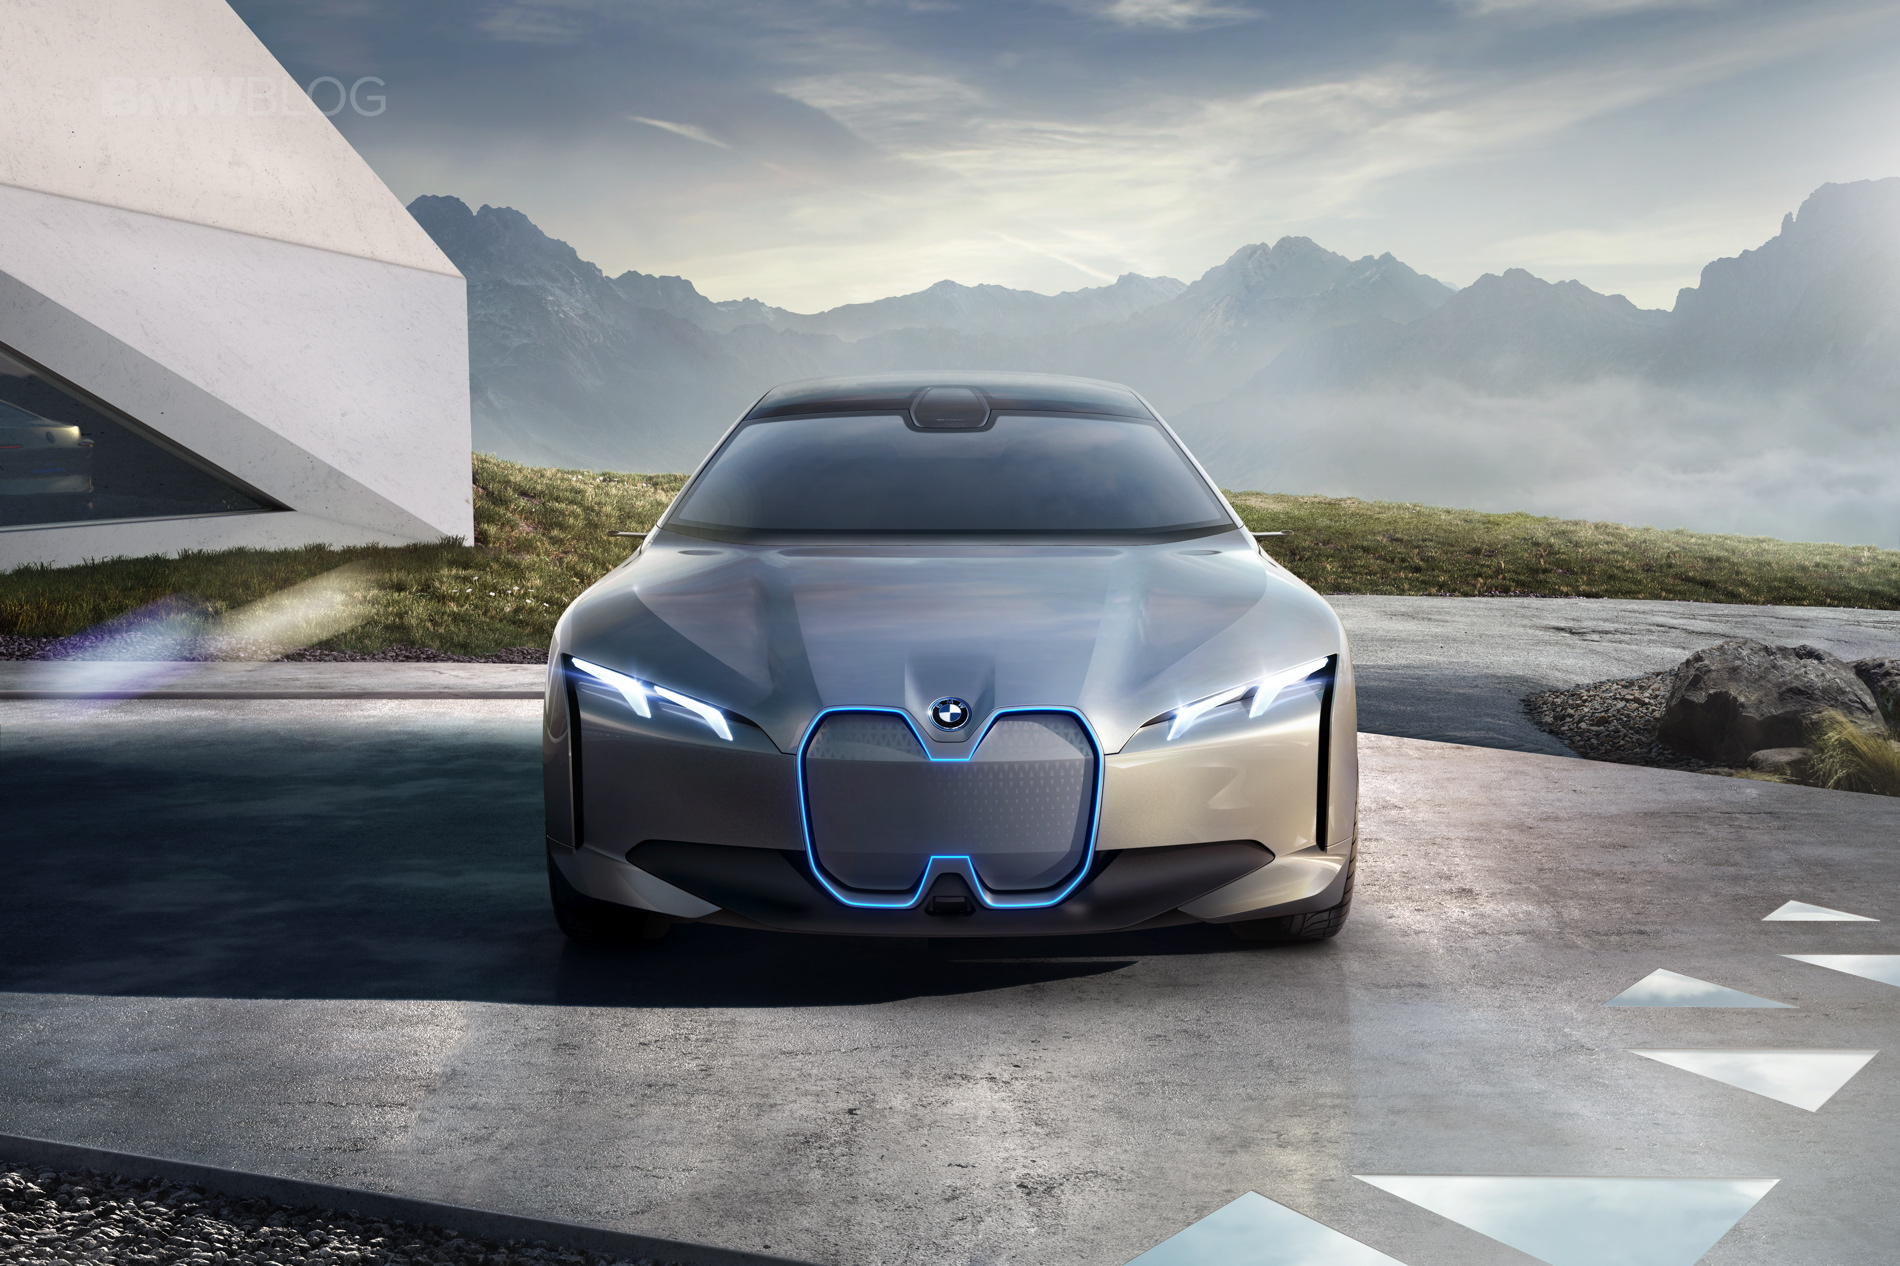 Bmw Reportedly Looking Into Offering Electric G20 3 Series Model In